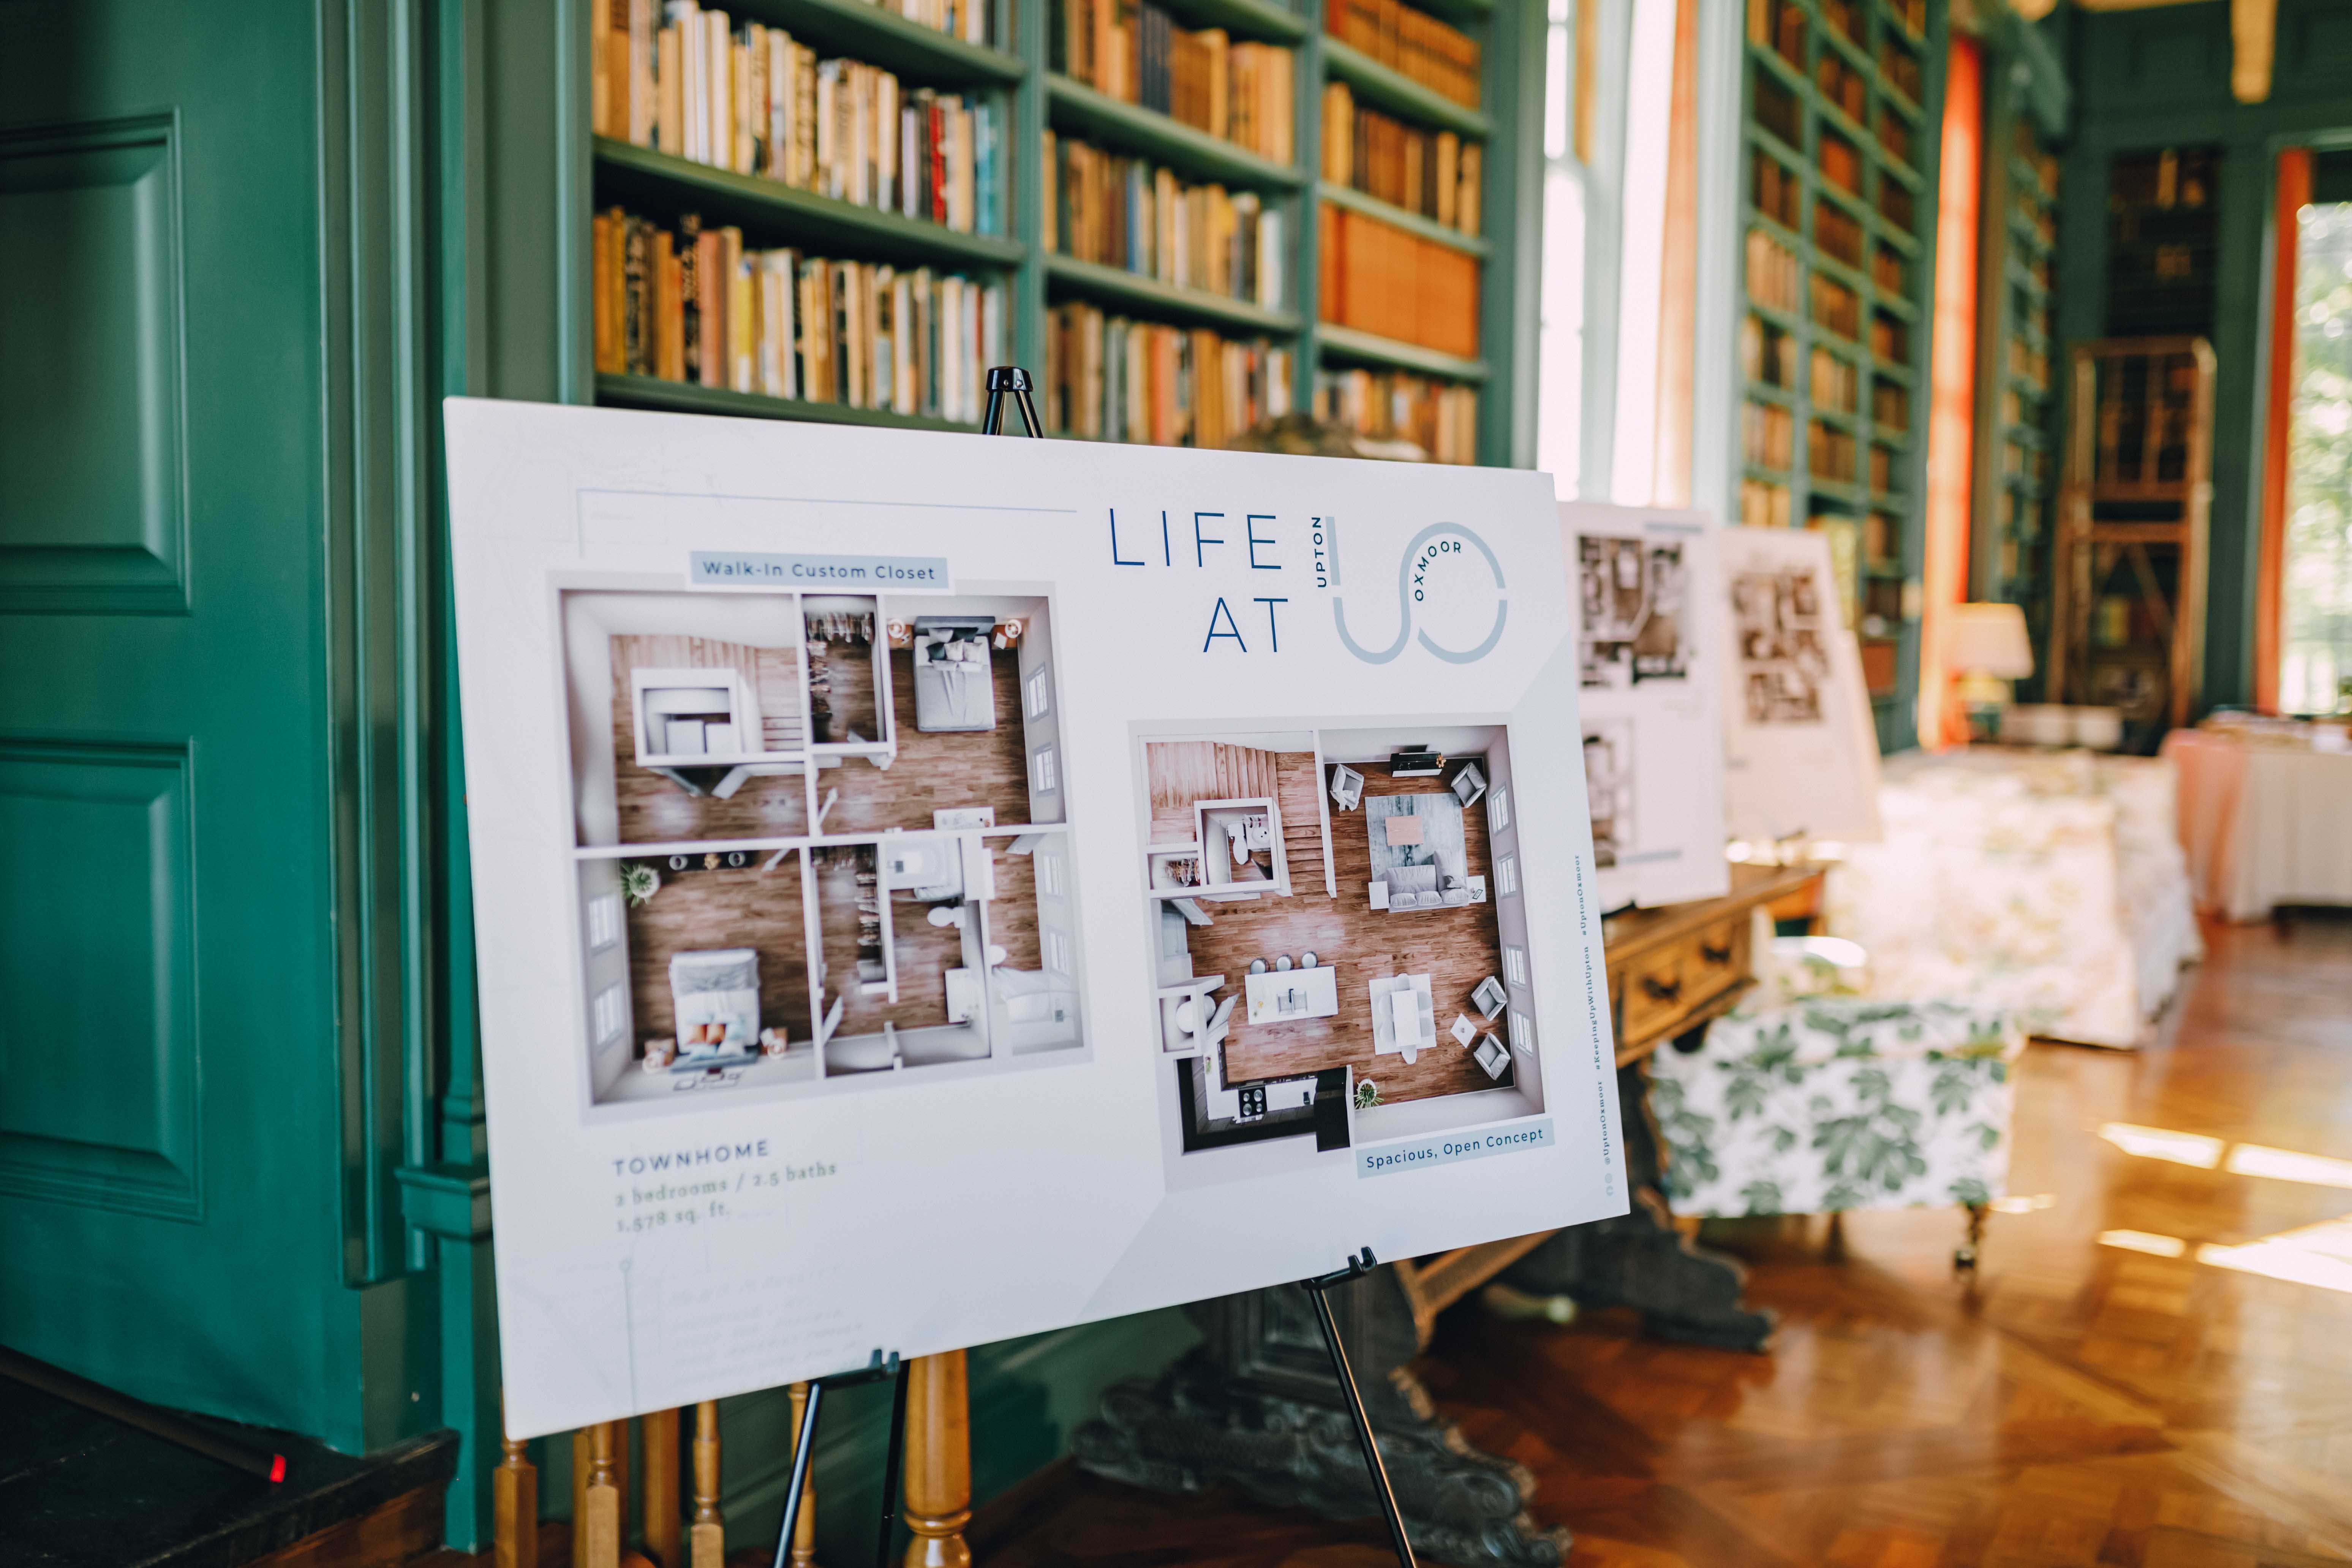 Life at Upton Oxmoor sign with 3D floor plans